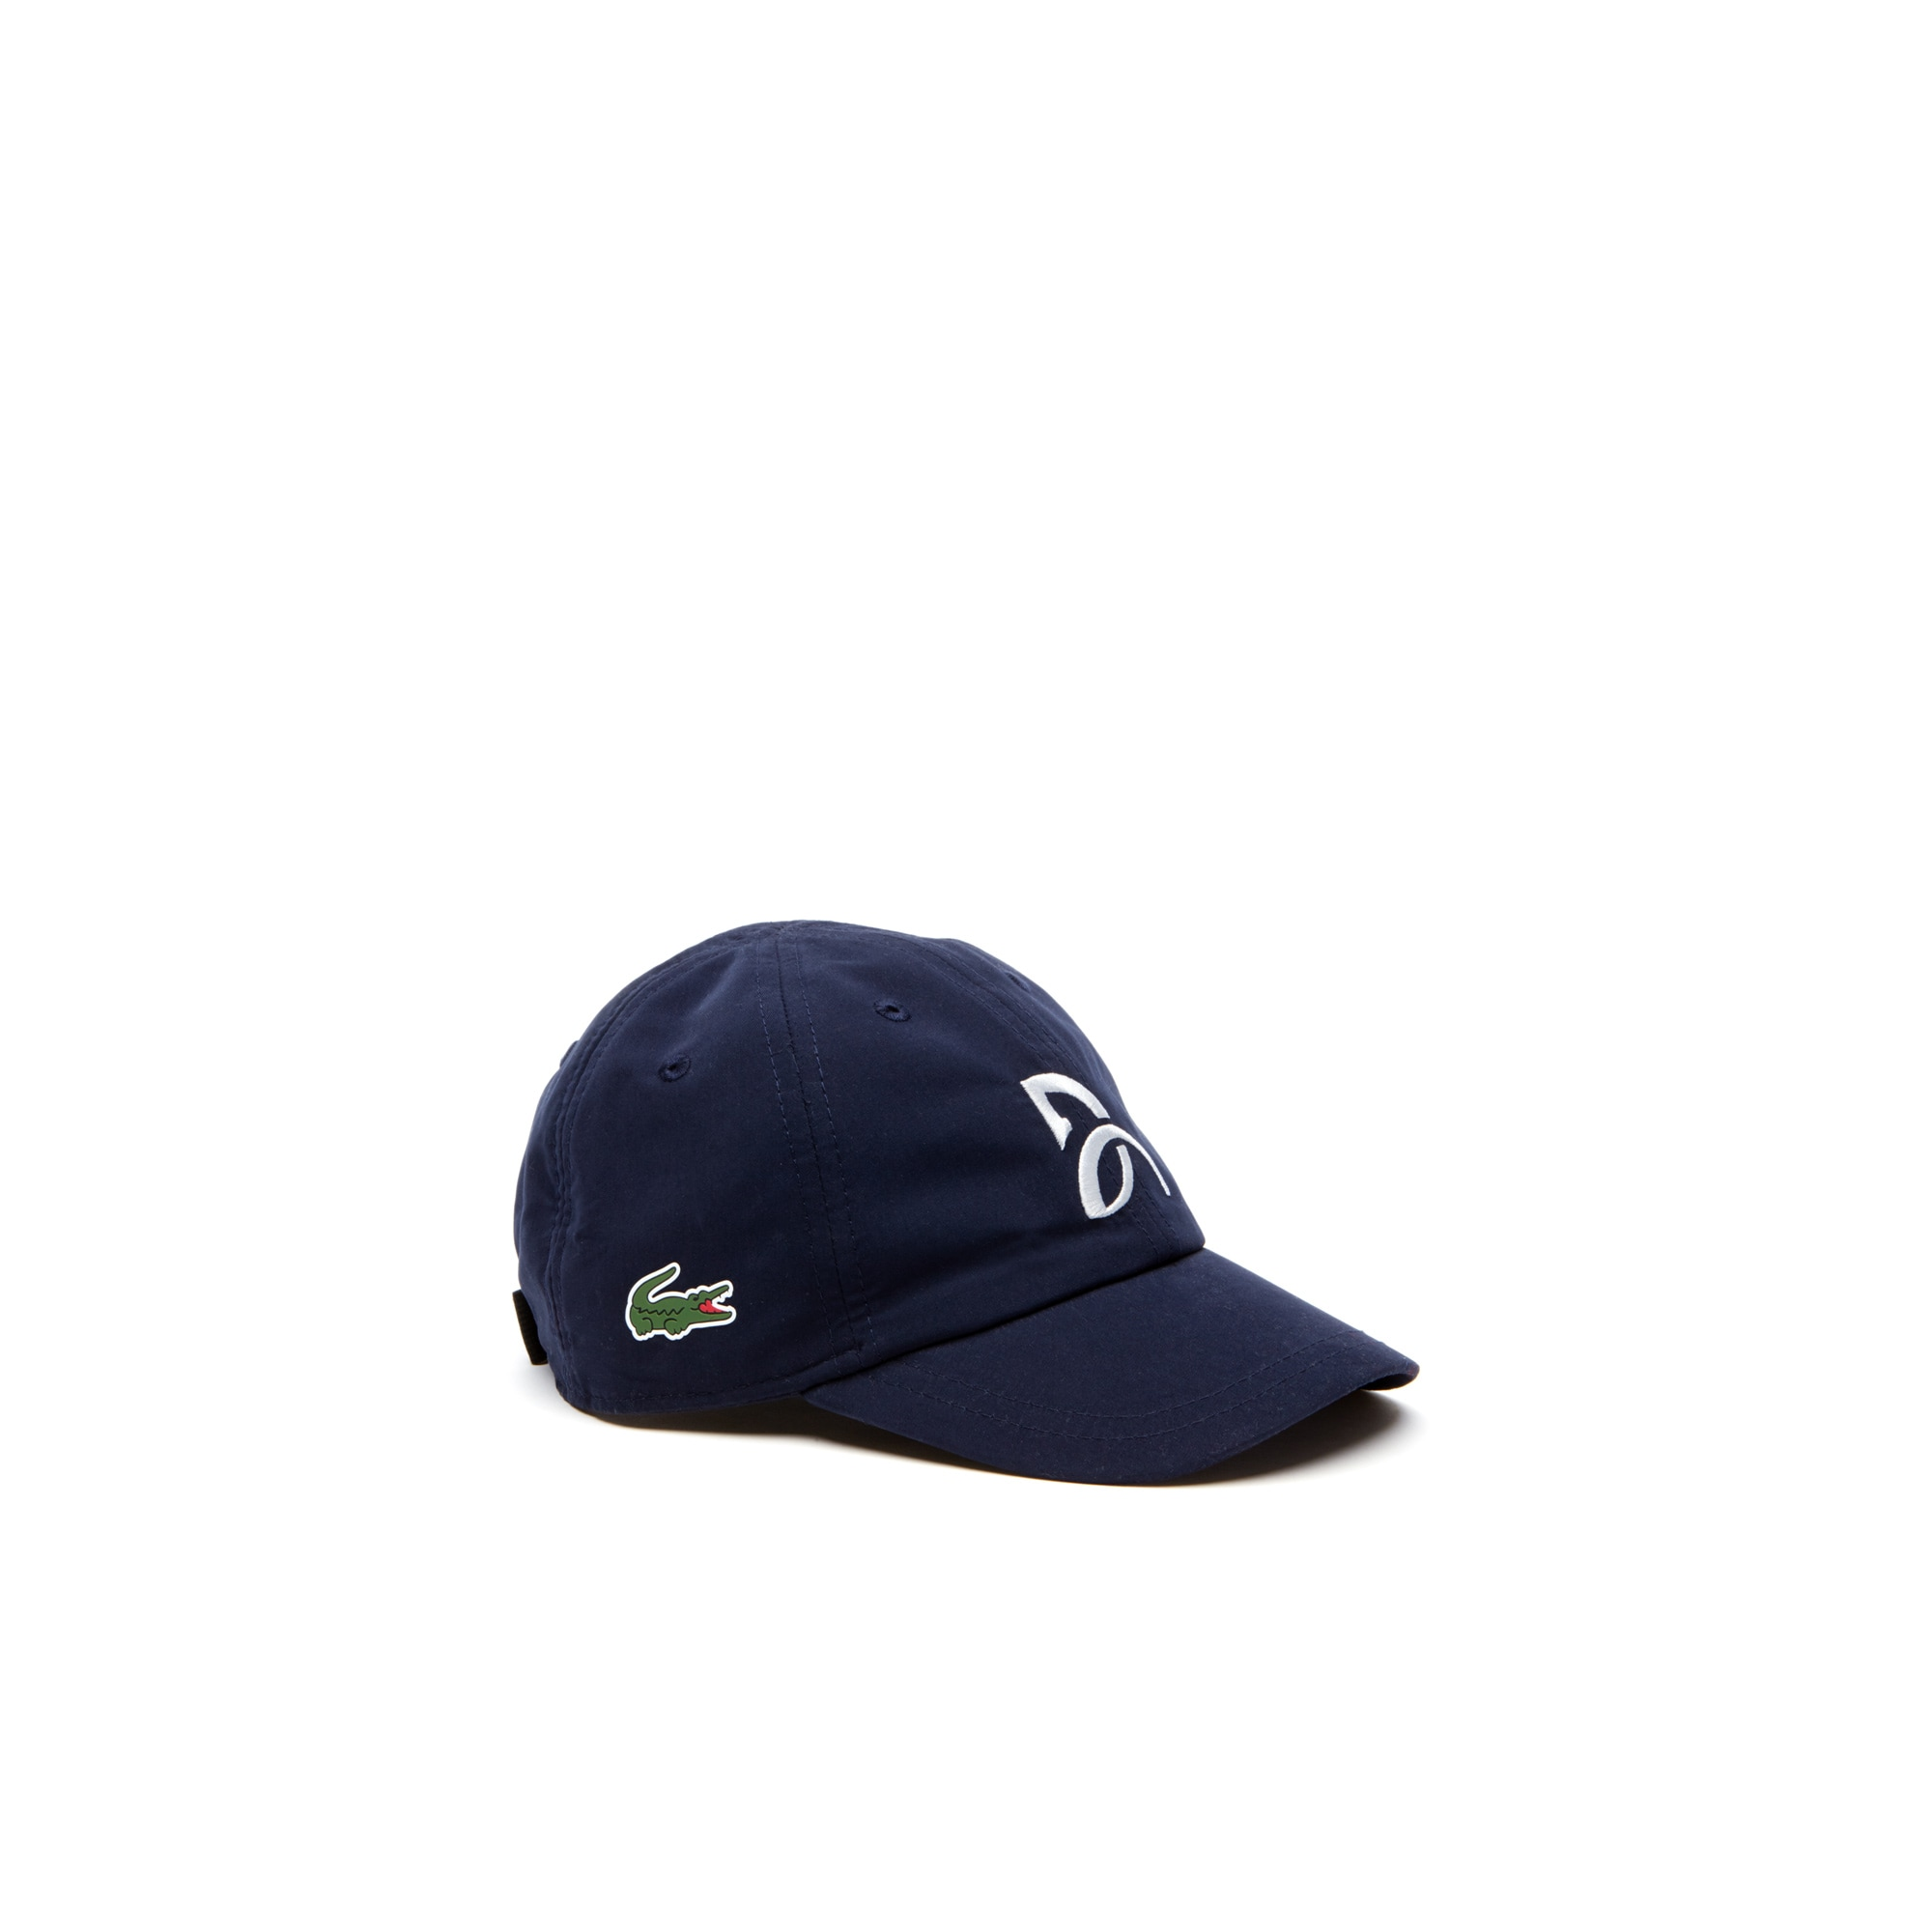 Gorra de niño Lacoste SPORT COLLECTION NOVAK DJOKOVIC SUPPORT WITH STYLE de microfibra